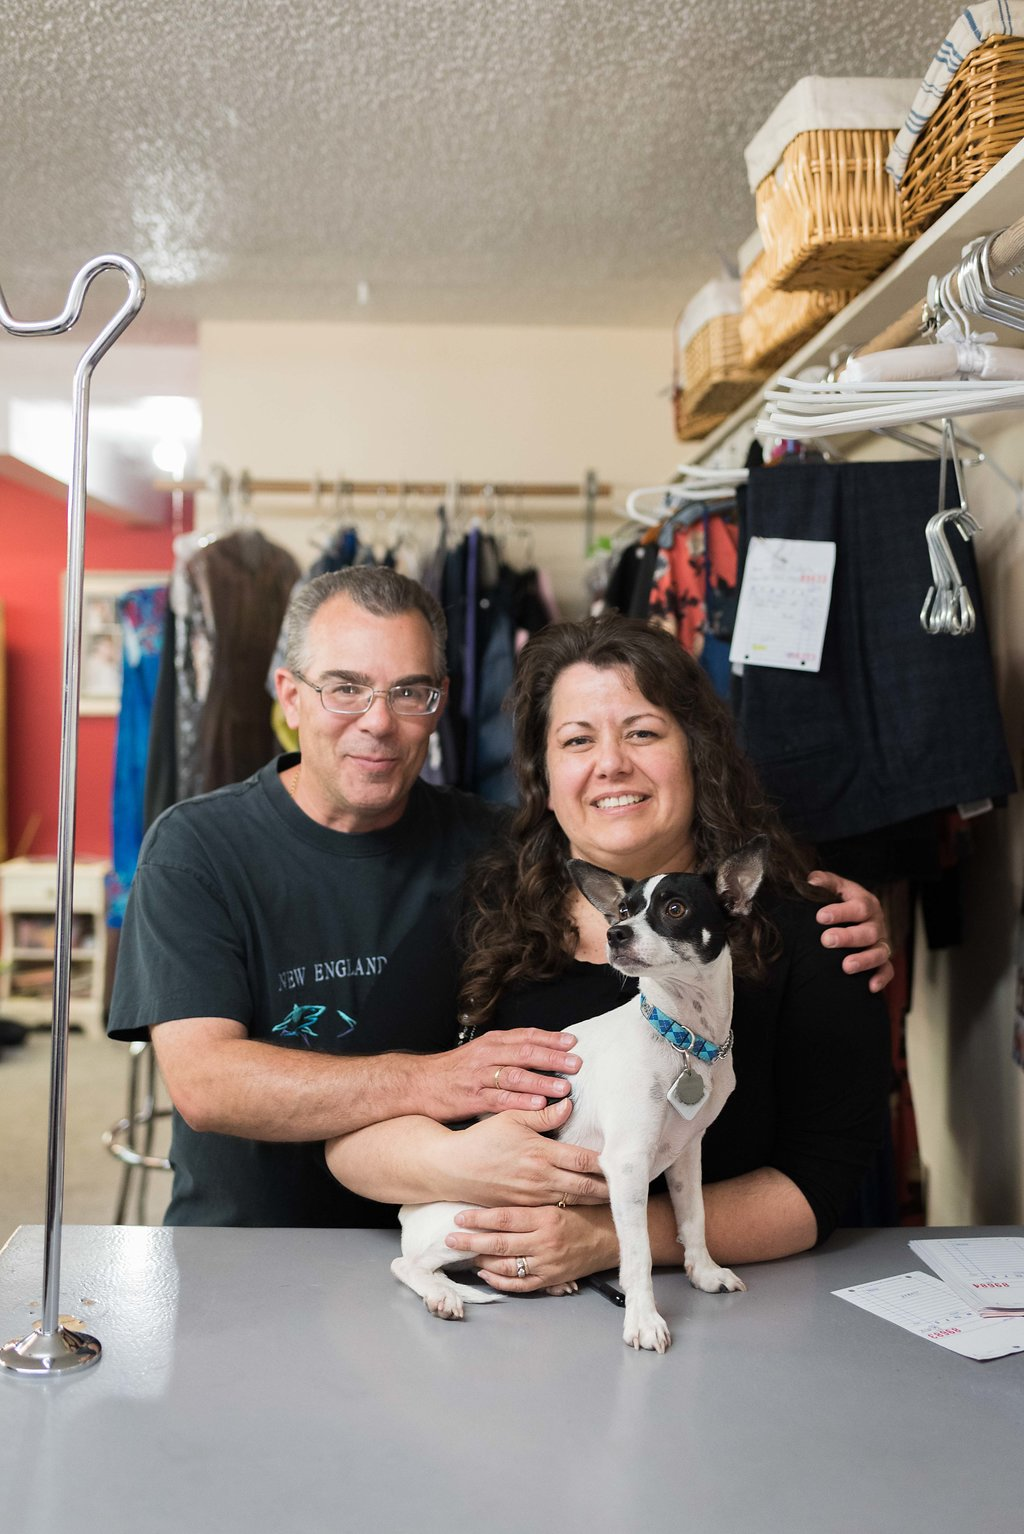 Meet sabrina and mike! - Sabrina and Mike are the proud owners of Bend Alterations and Sabrina does most of the shop's alterations herself. She has been sewing for 46 years and is a master of her craft!